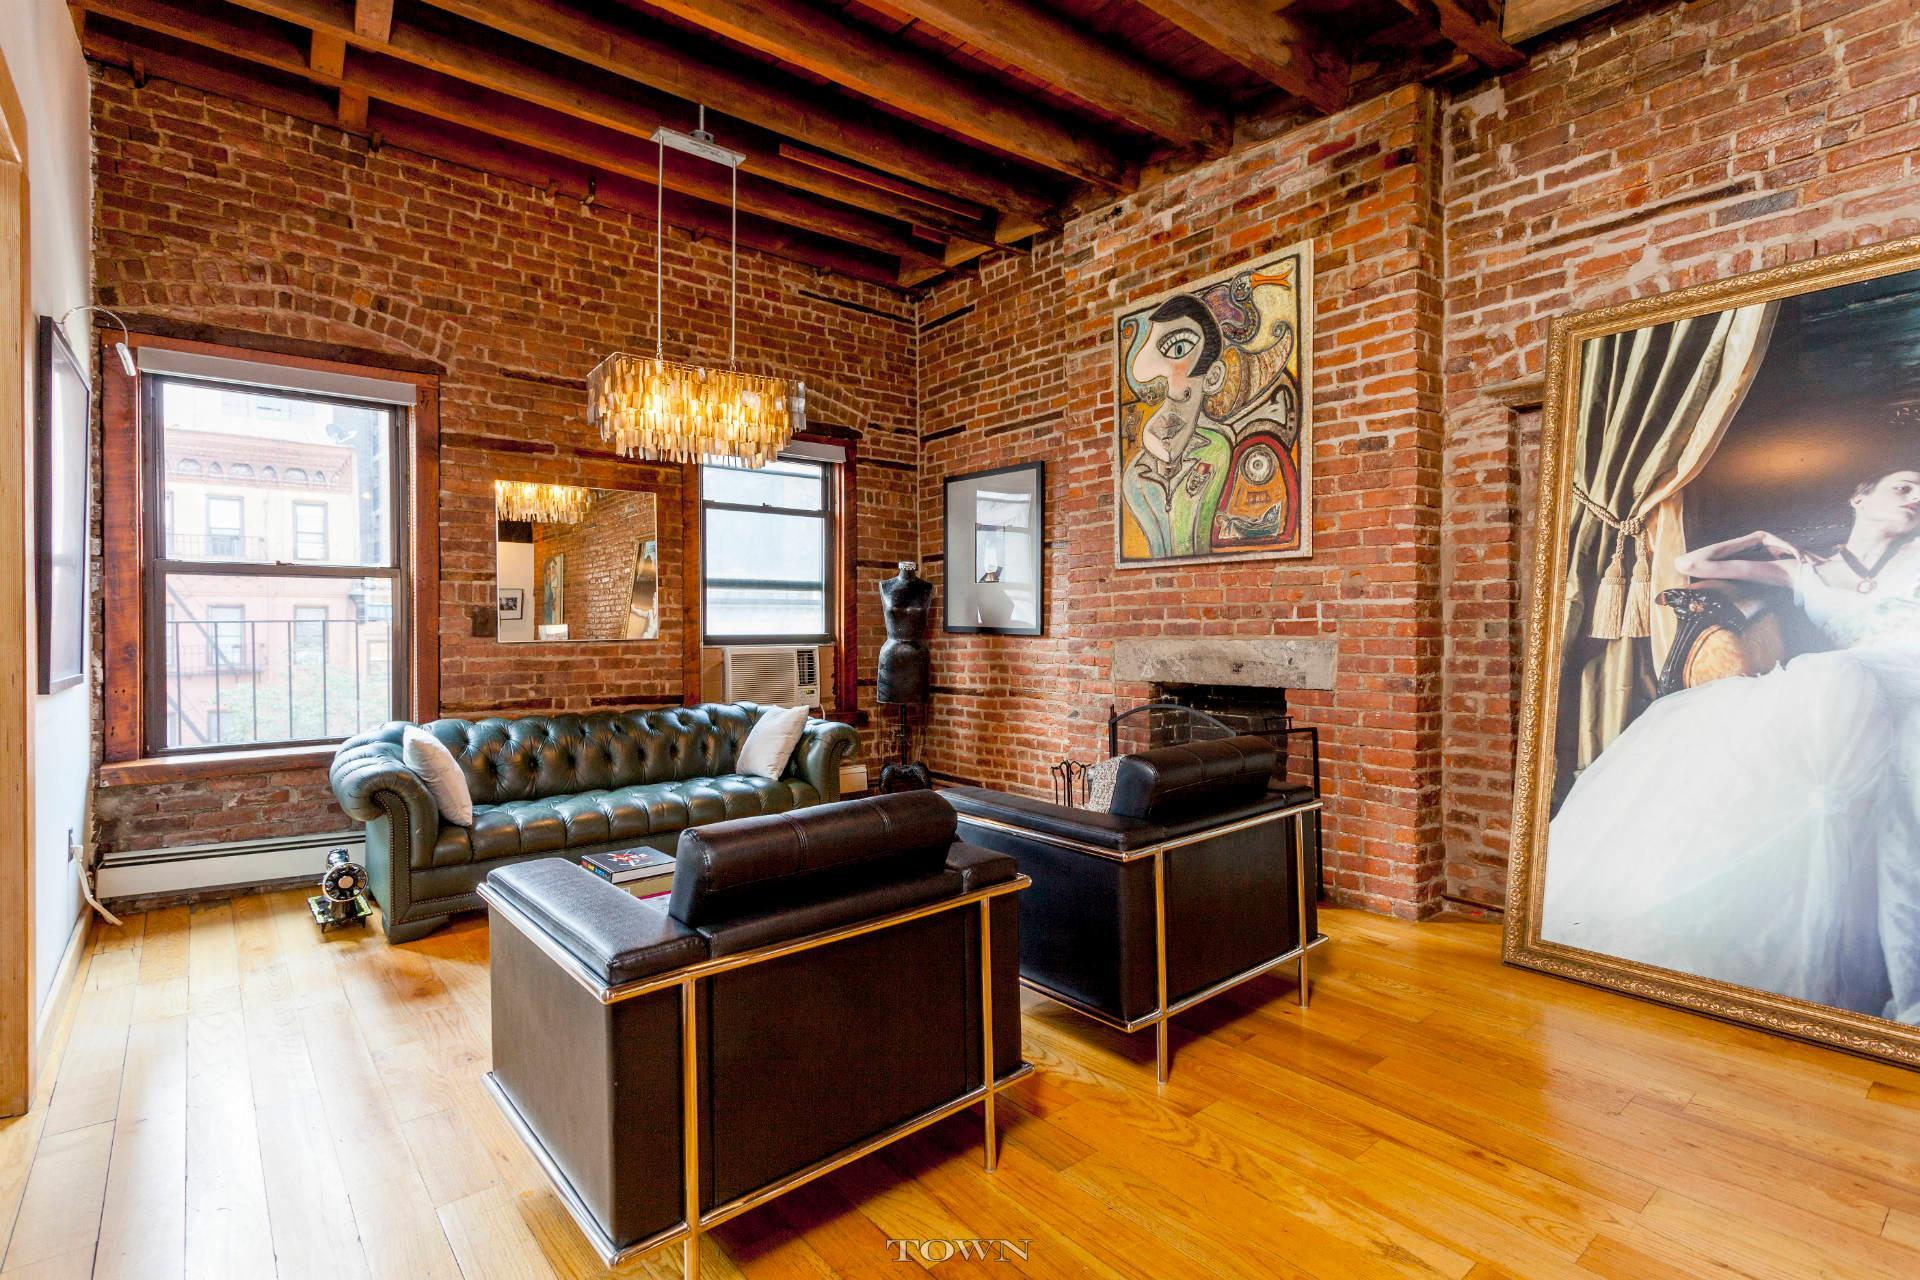 529 9th avenue, rental, loft, hell's kitchen, living room